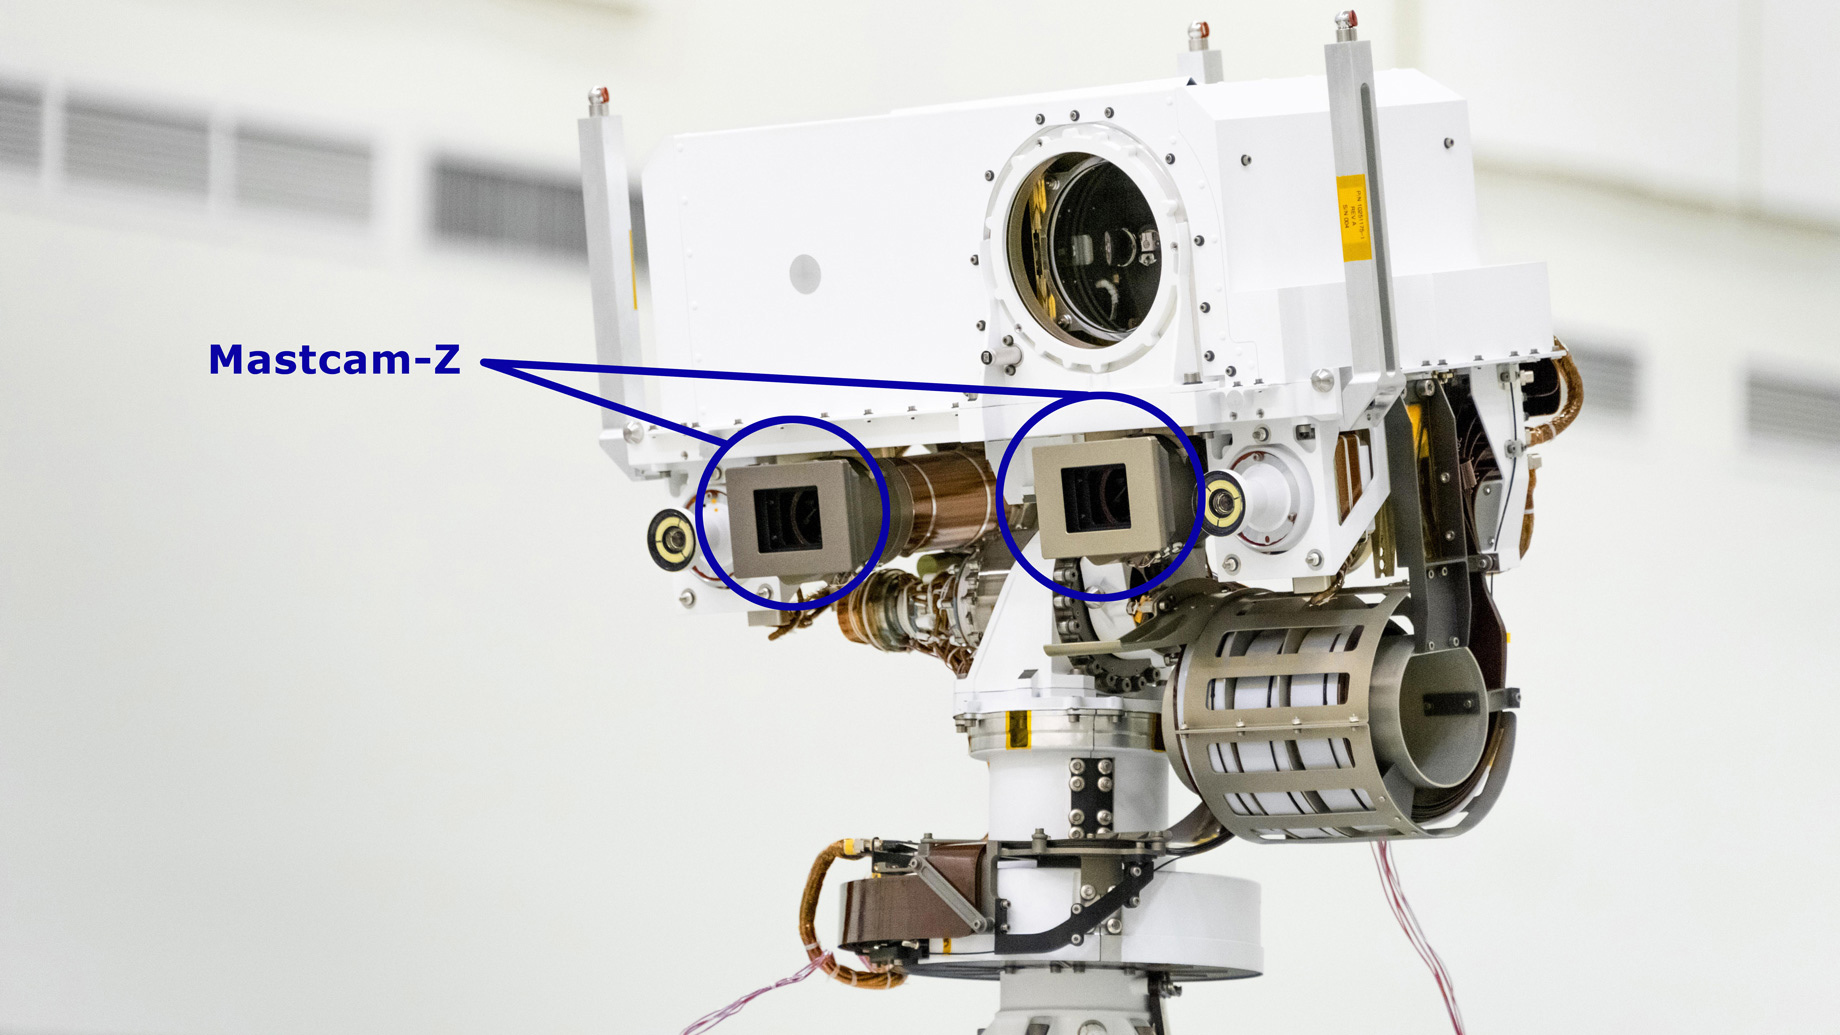 A close-up of the head of Mars 2020's remote sensing mast.